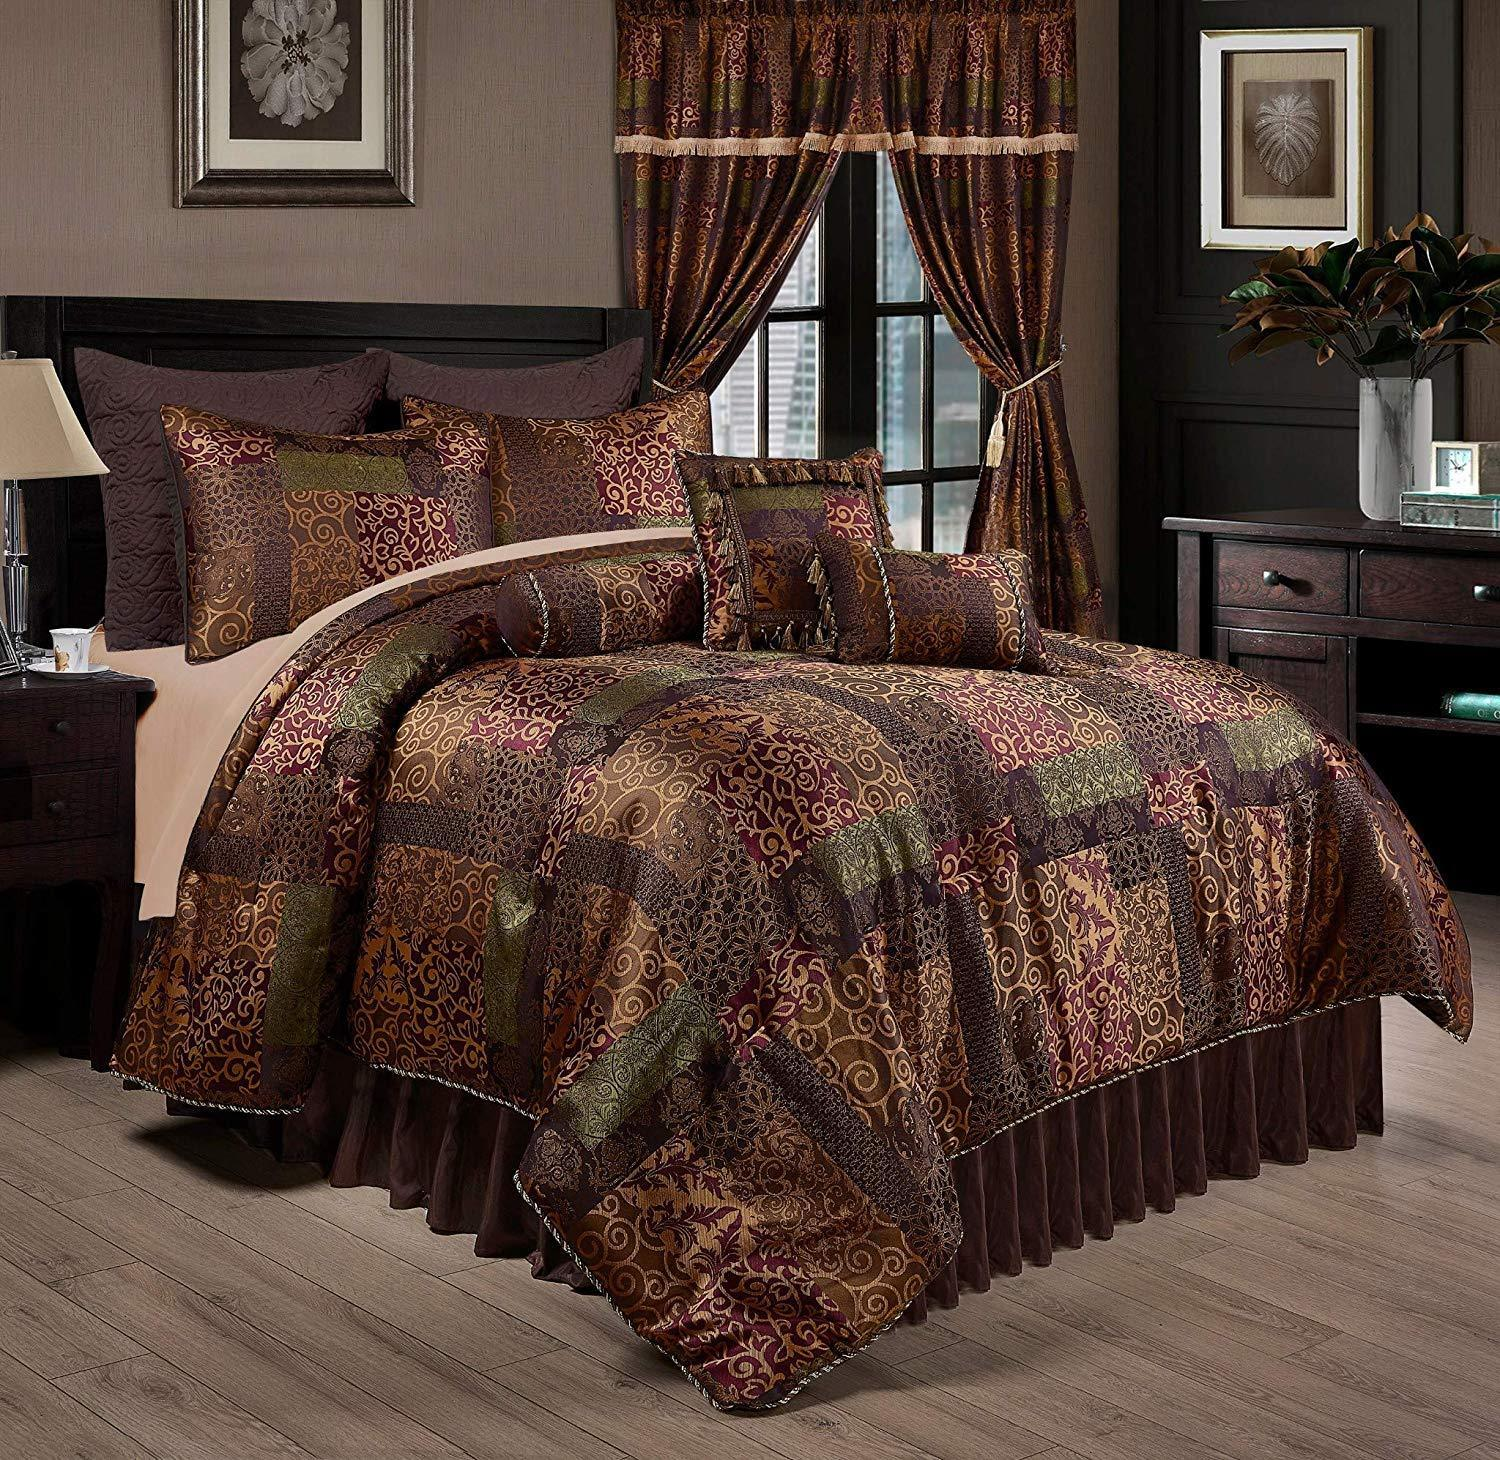 Luxurious Silky Multi-Farbes Jacquard 9 pcs Cal King Queen Comforter or Curtain